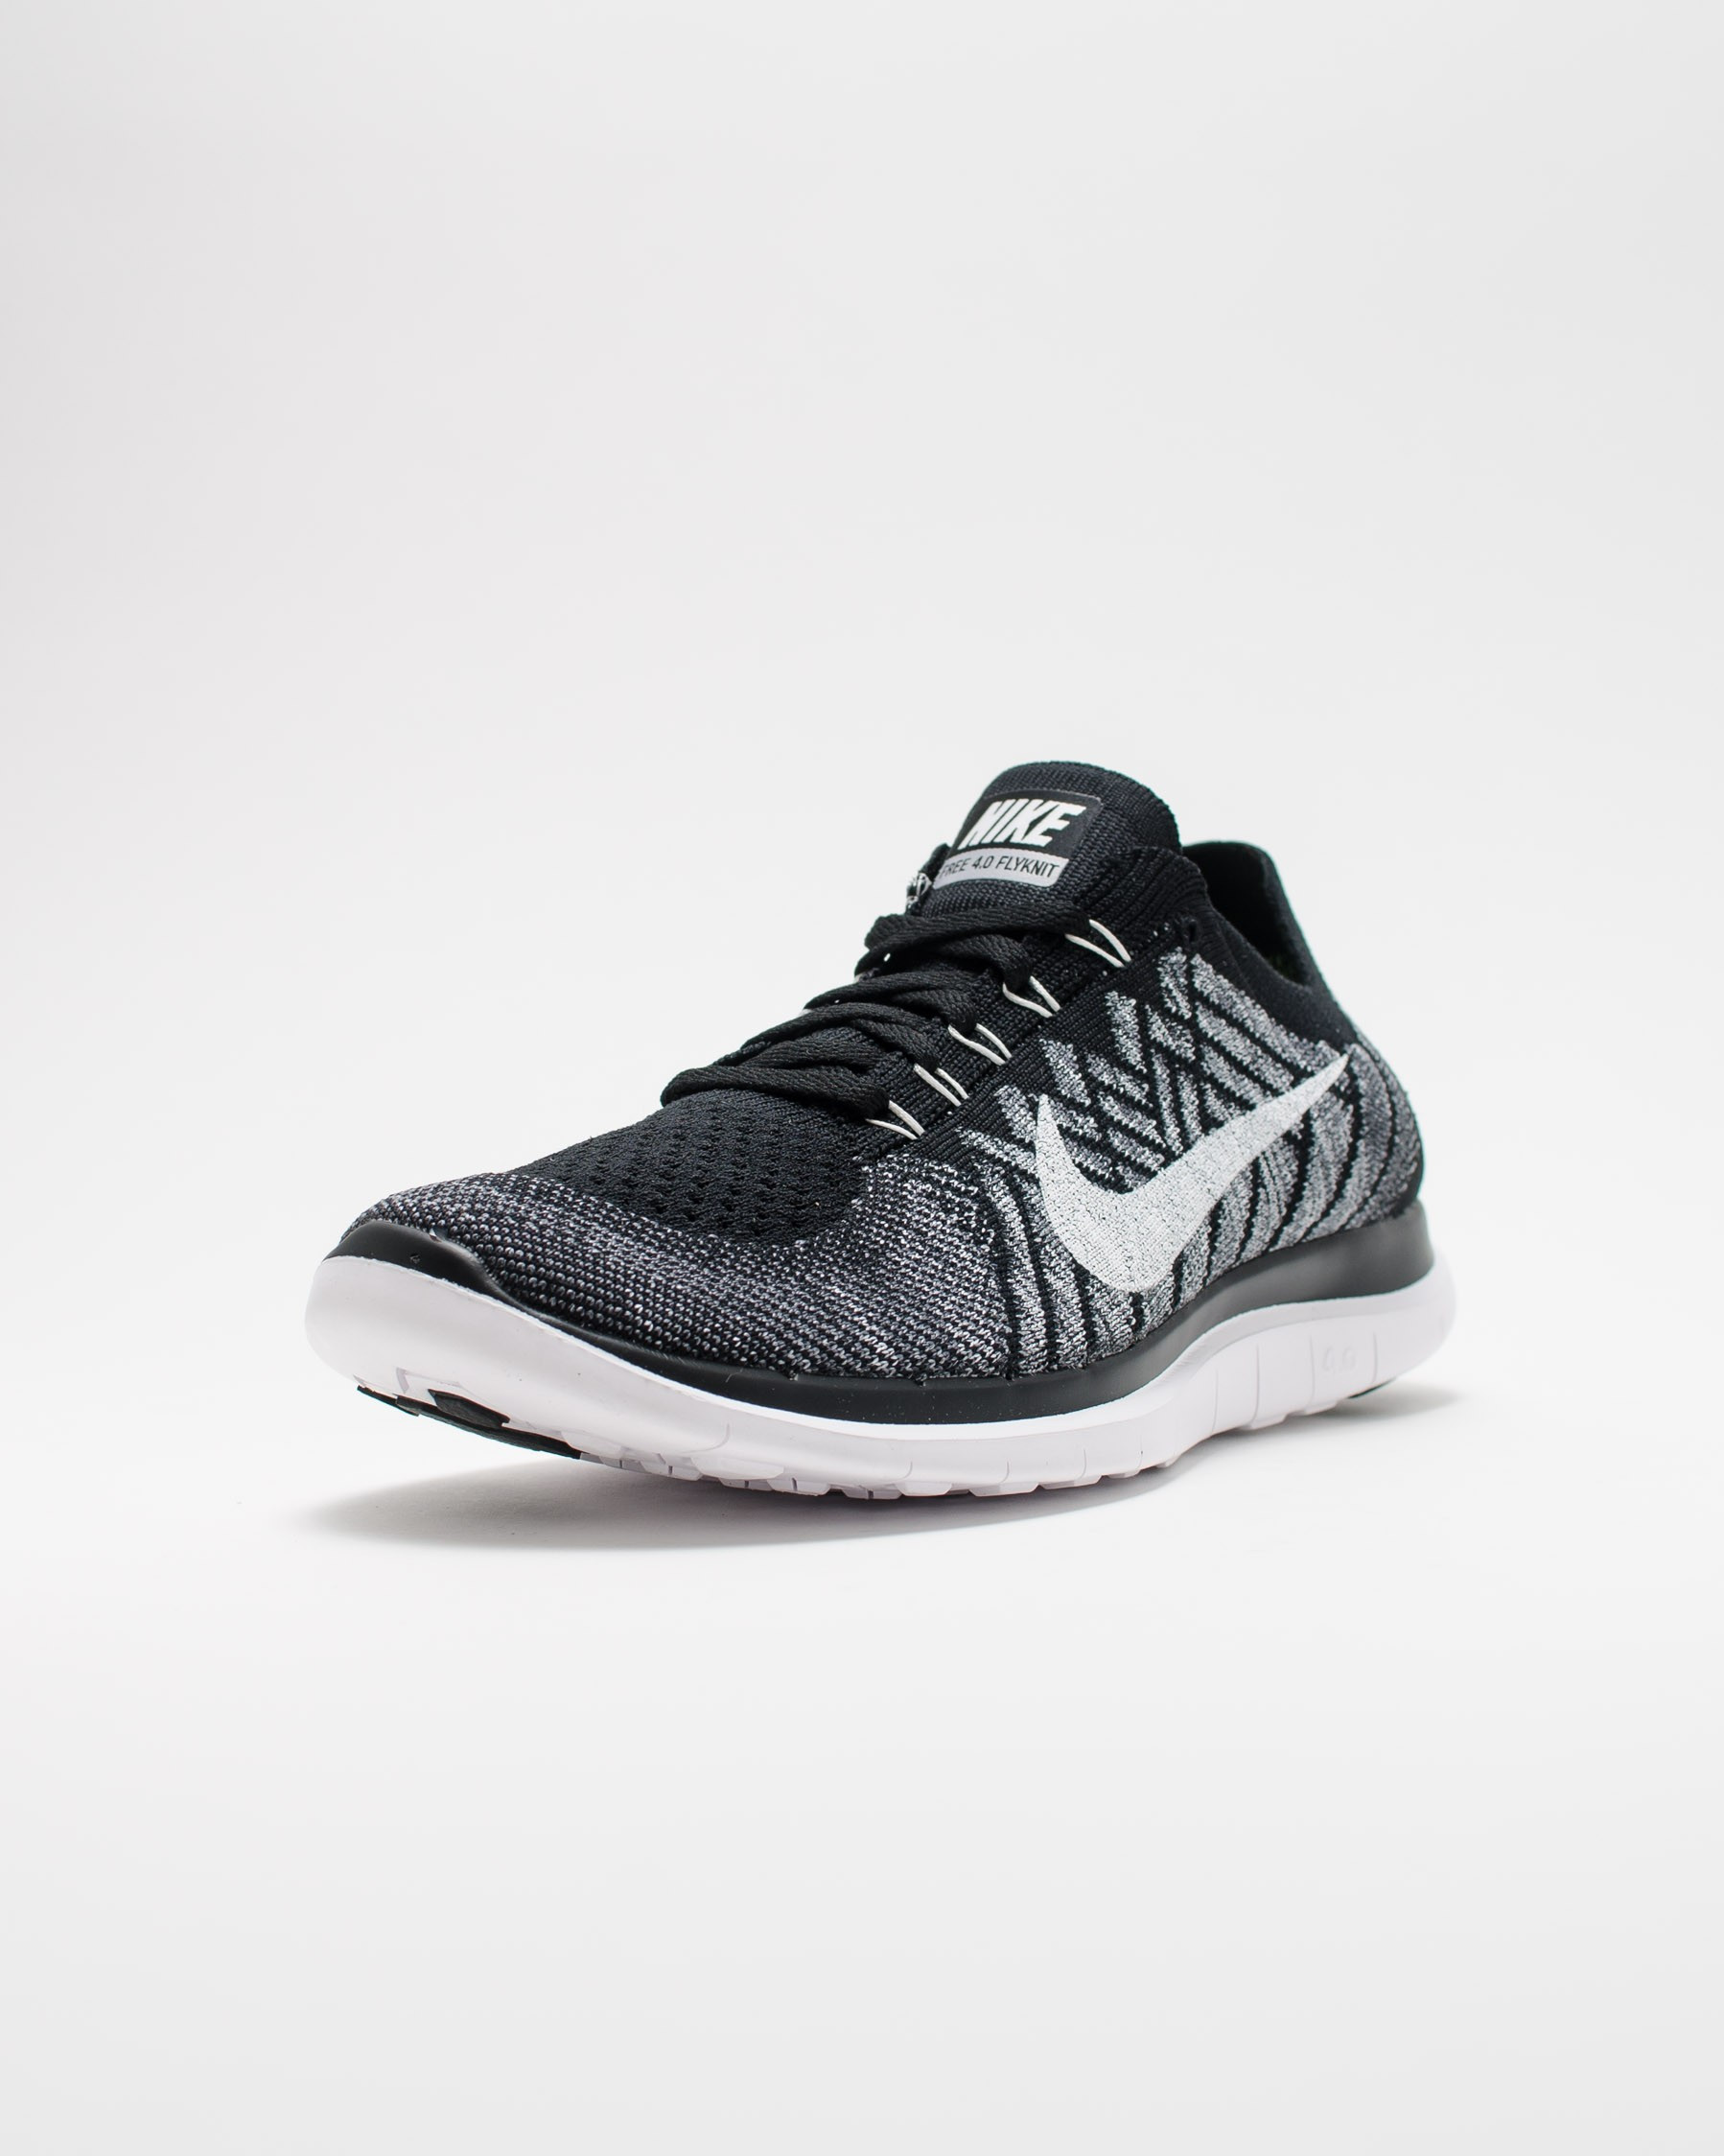 Bambas Nike Negras Mujer Increíble Nike Free 4 0 Flyknit V2 Mujer Hombre Negras Gris Lobo Of 31  Magnífico Bambas Nike Negras Mujer